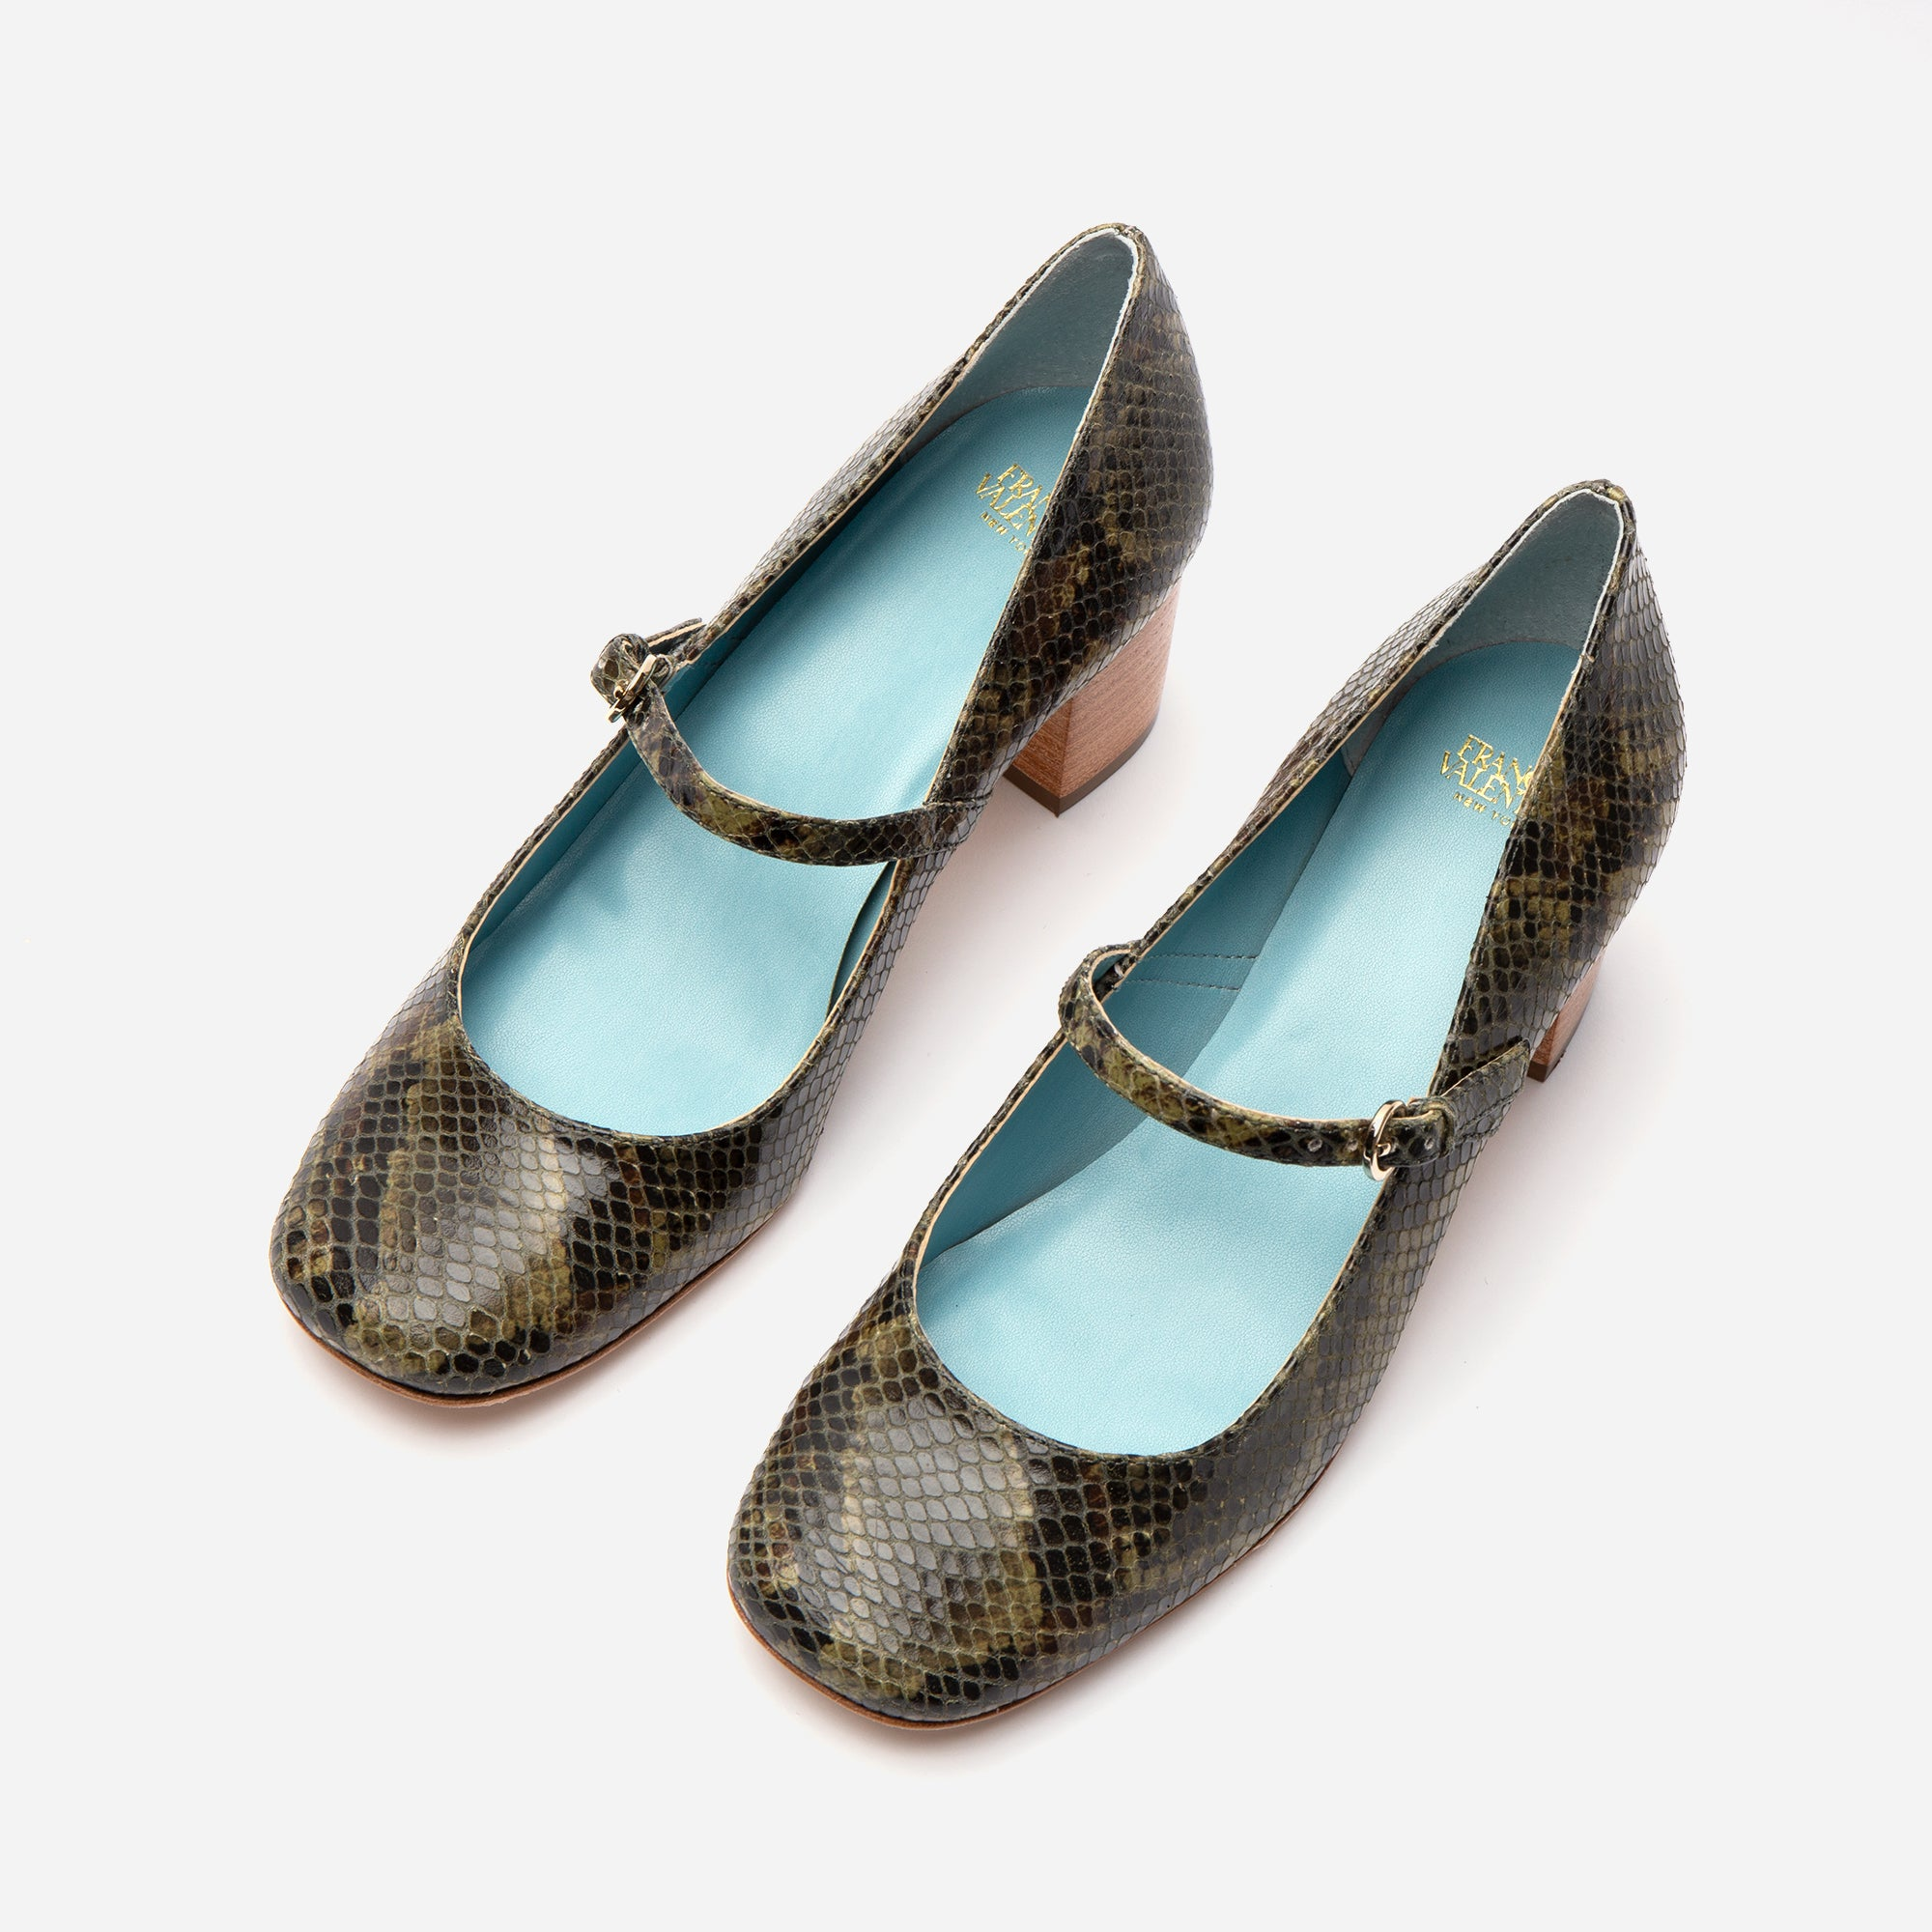 Kat Mary Jane Heels Snake Printed Leather Olive